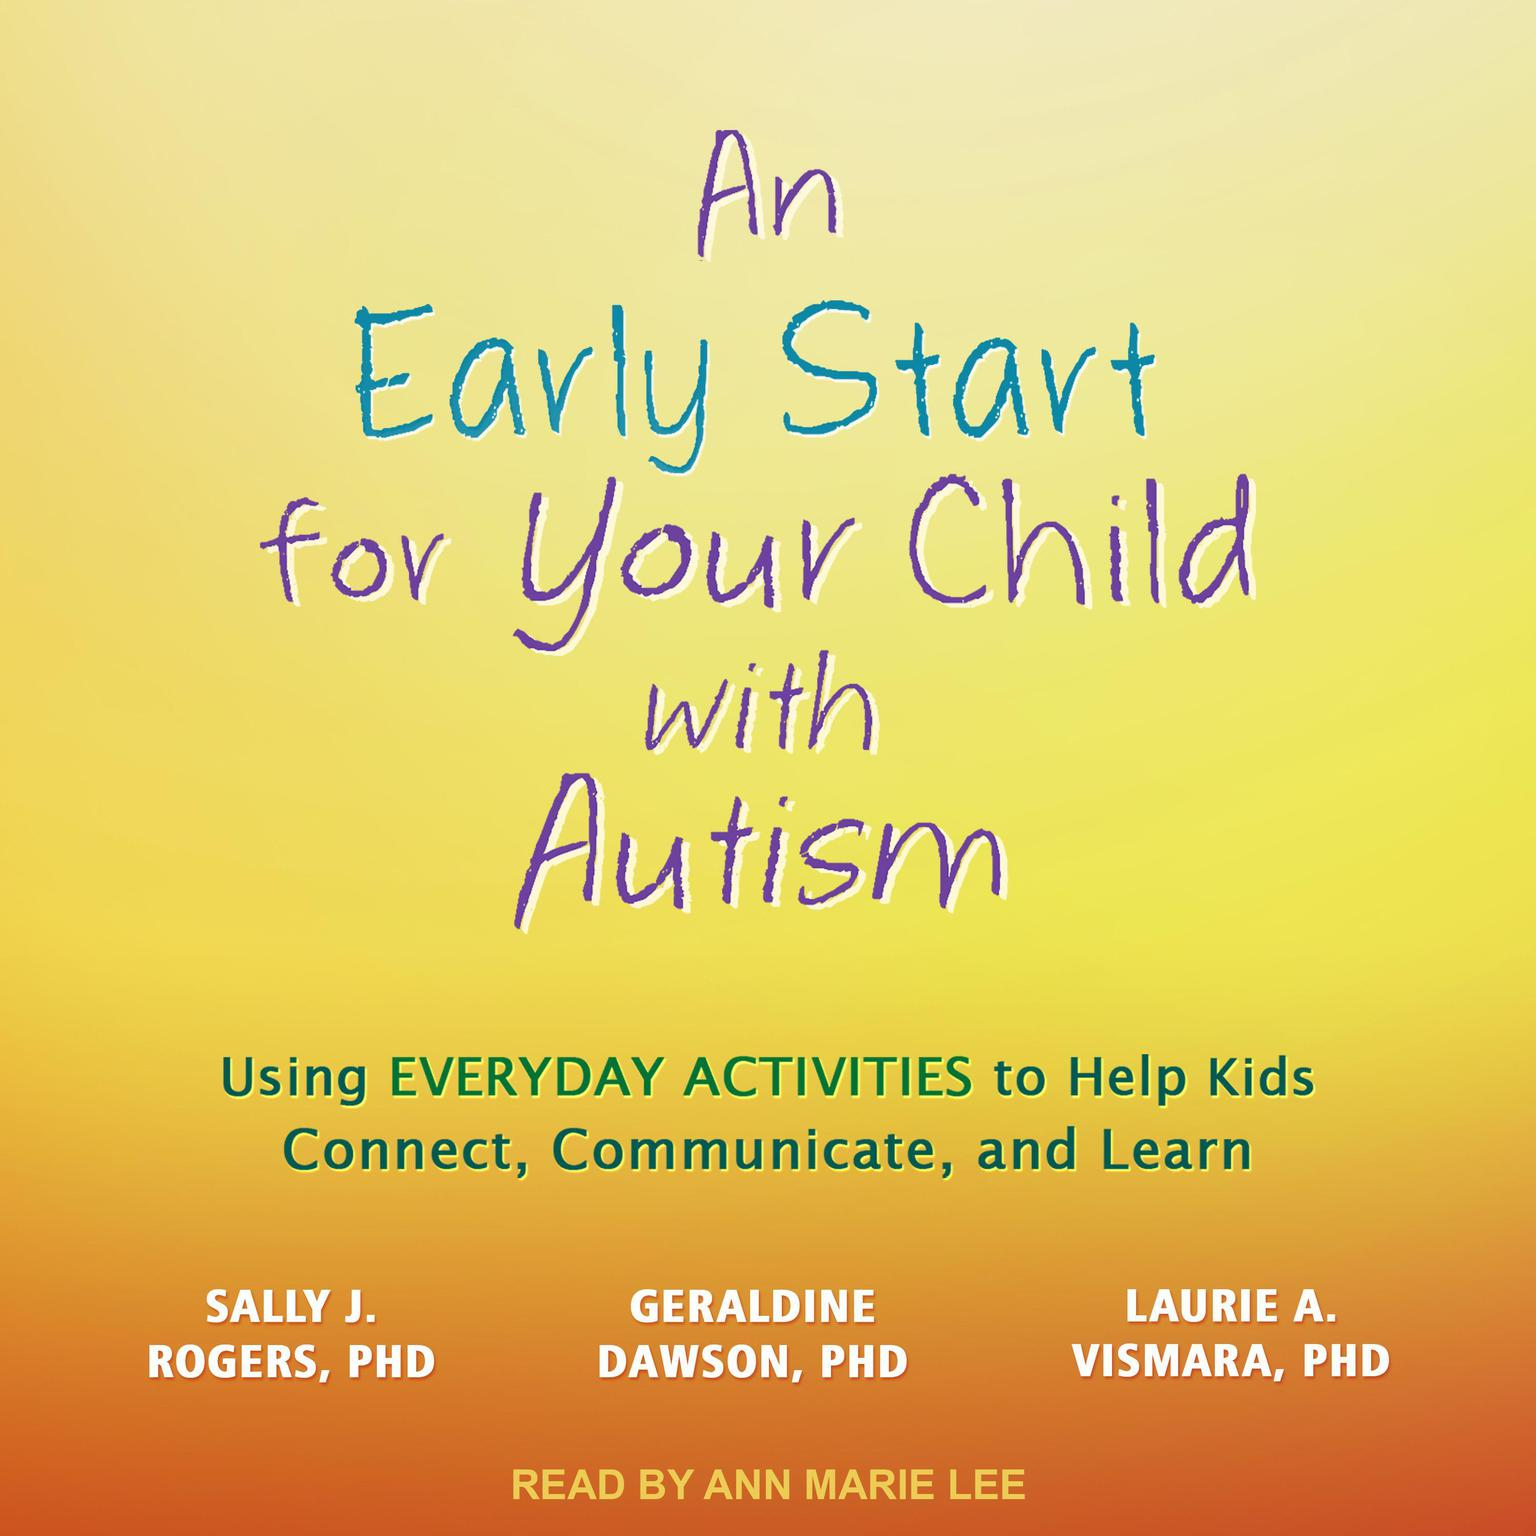 An Early Start for Your Child with Autism: Using Everyday Activities to Help Kids Connect, Communicate, and Learn Audiobook, by Sally J. Rogers